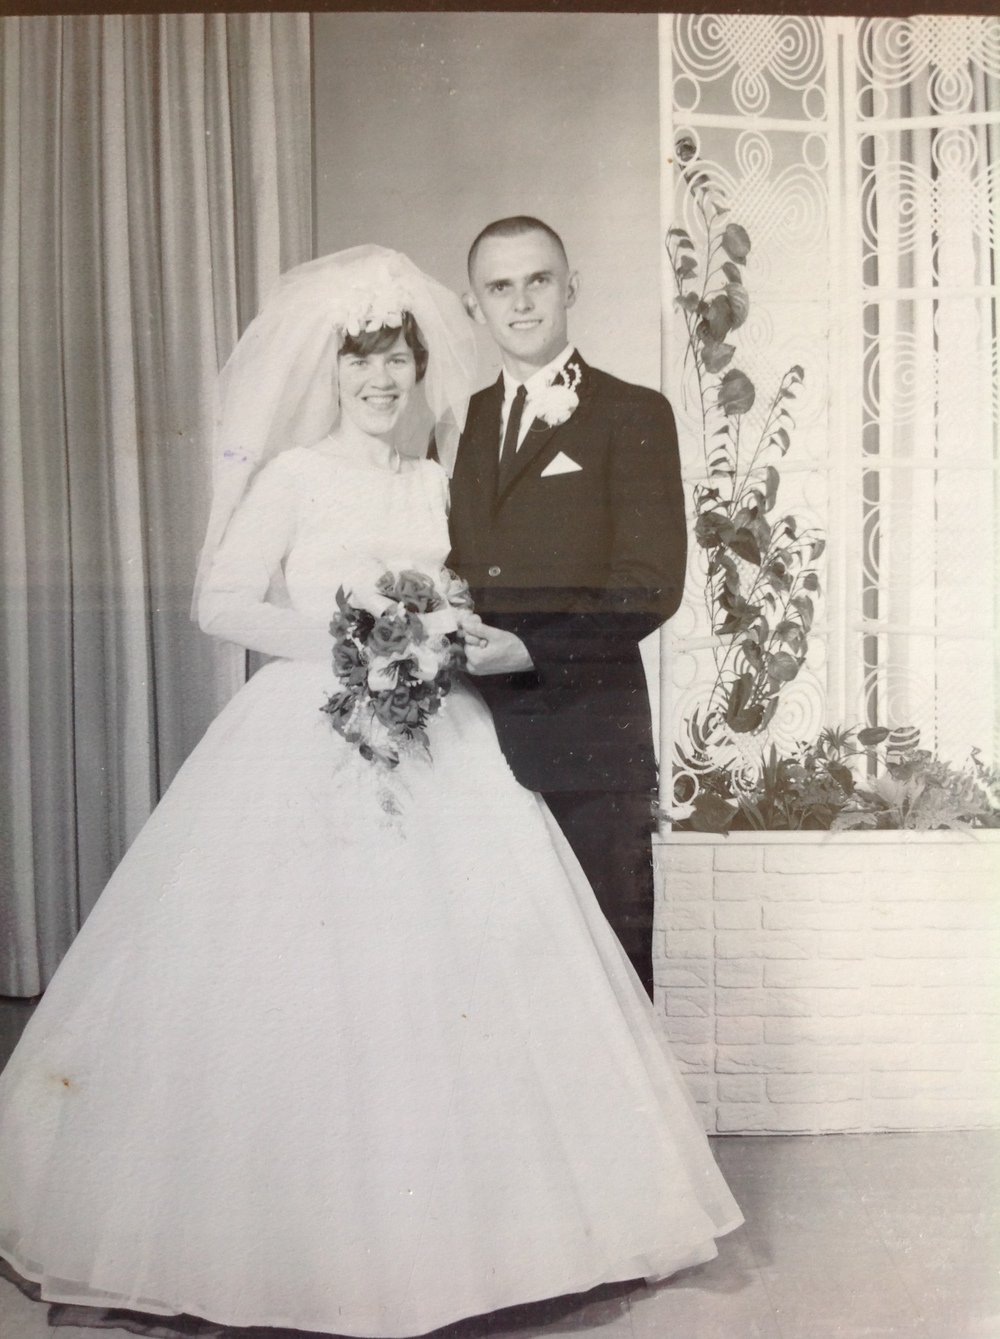 Christal's parents, 50 years ago